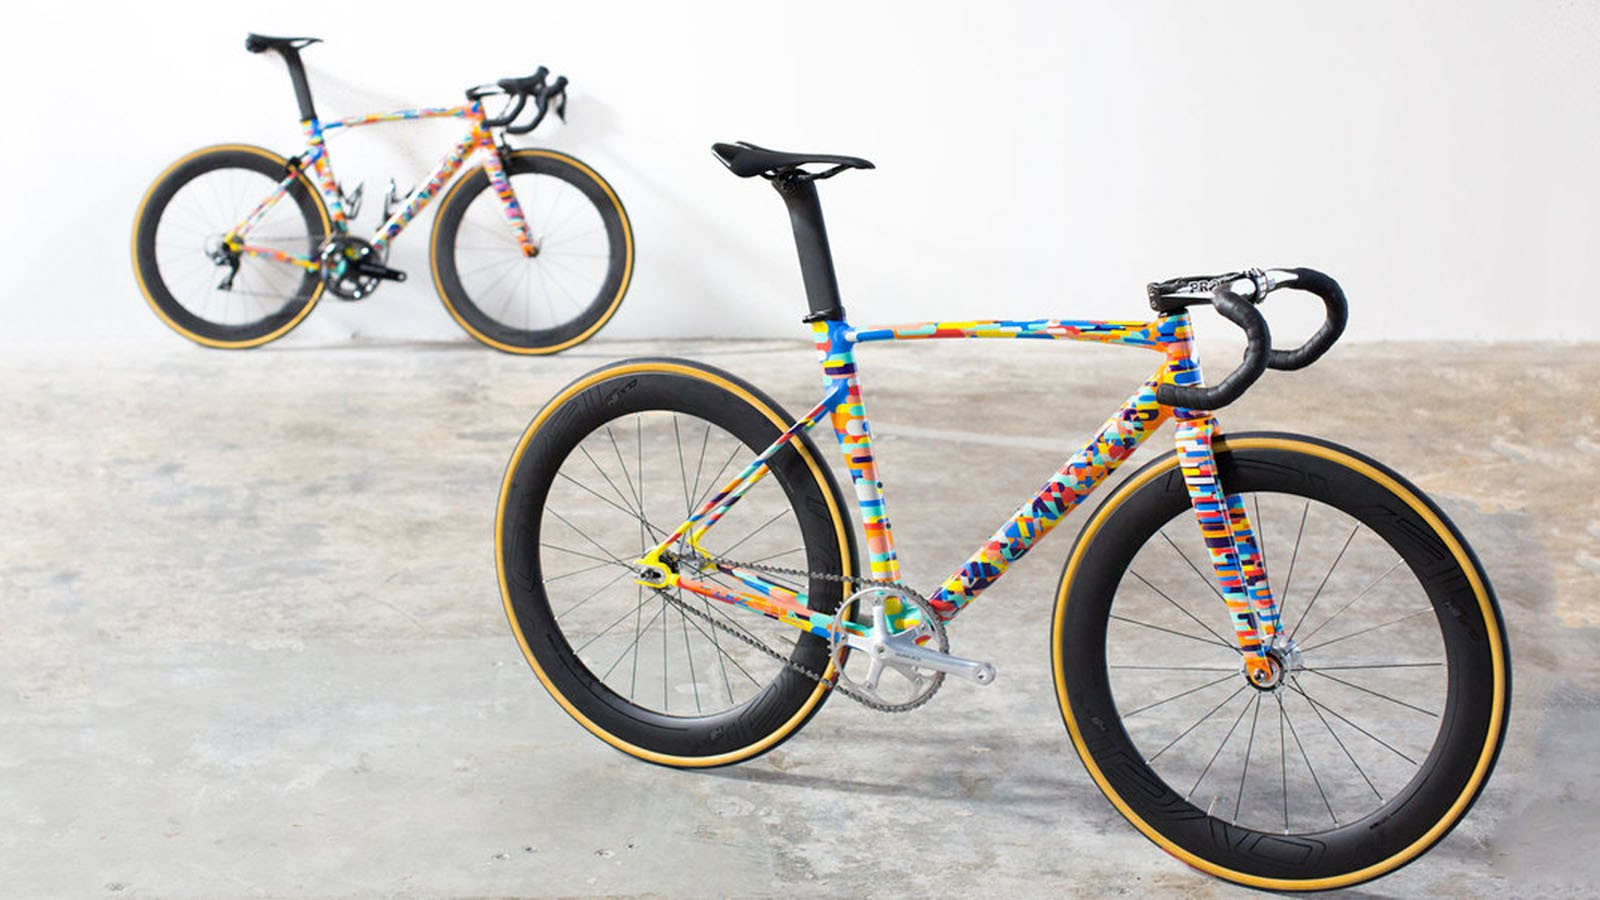 Specialized is making some pretty schmick frames for its Red Hook Crit team